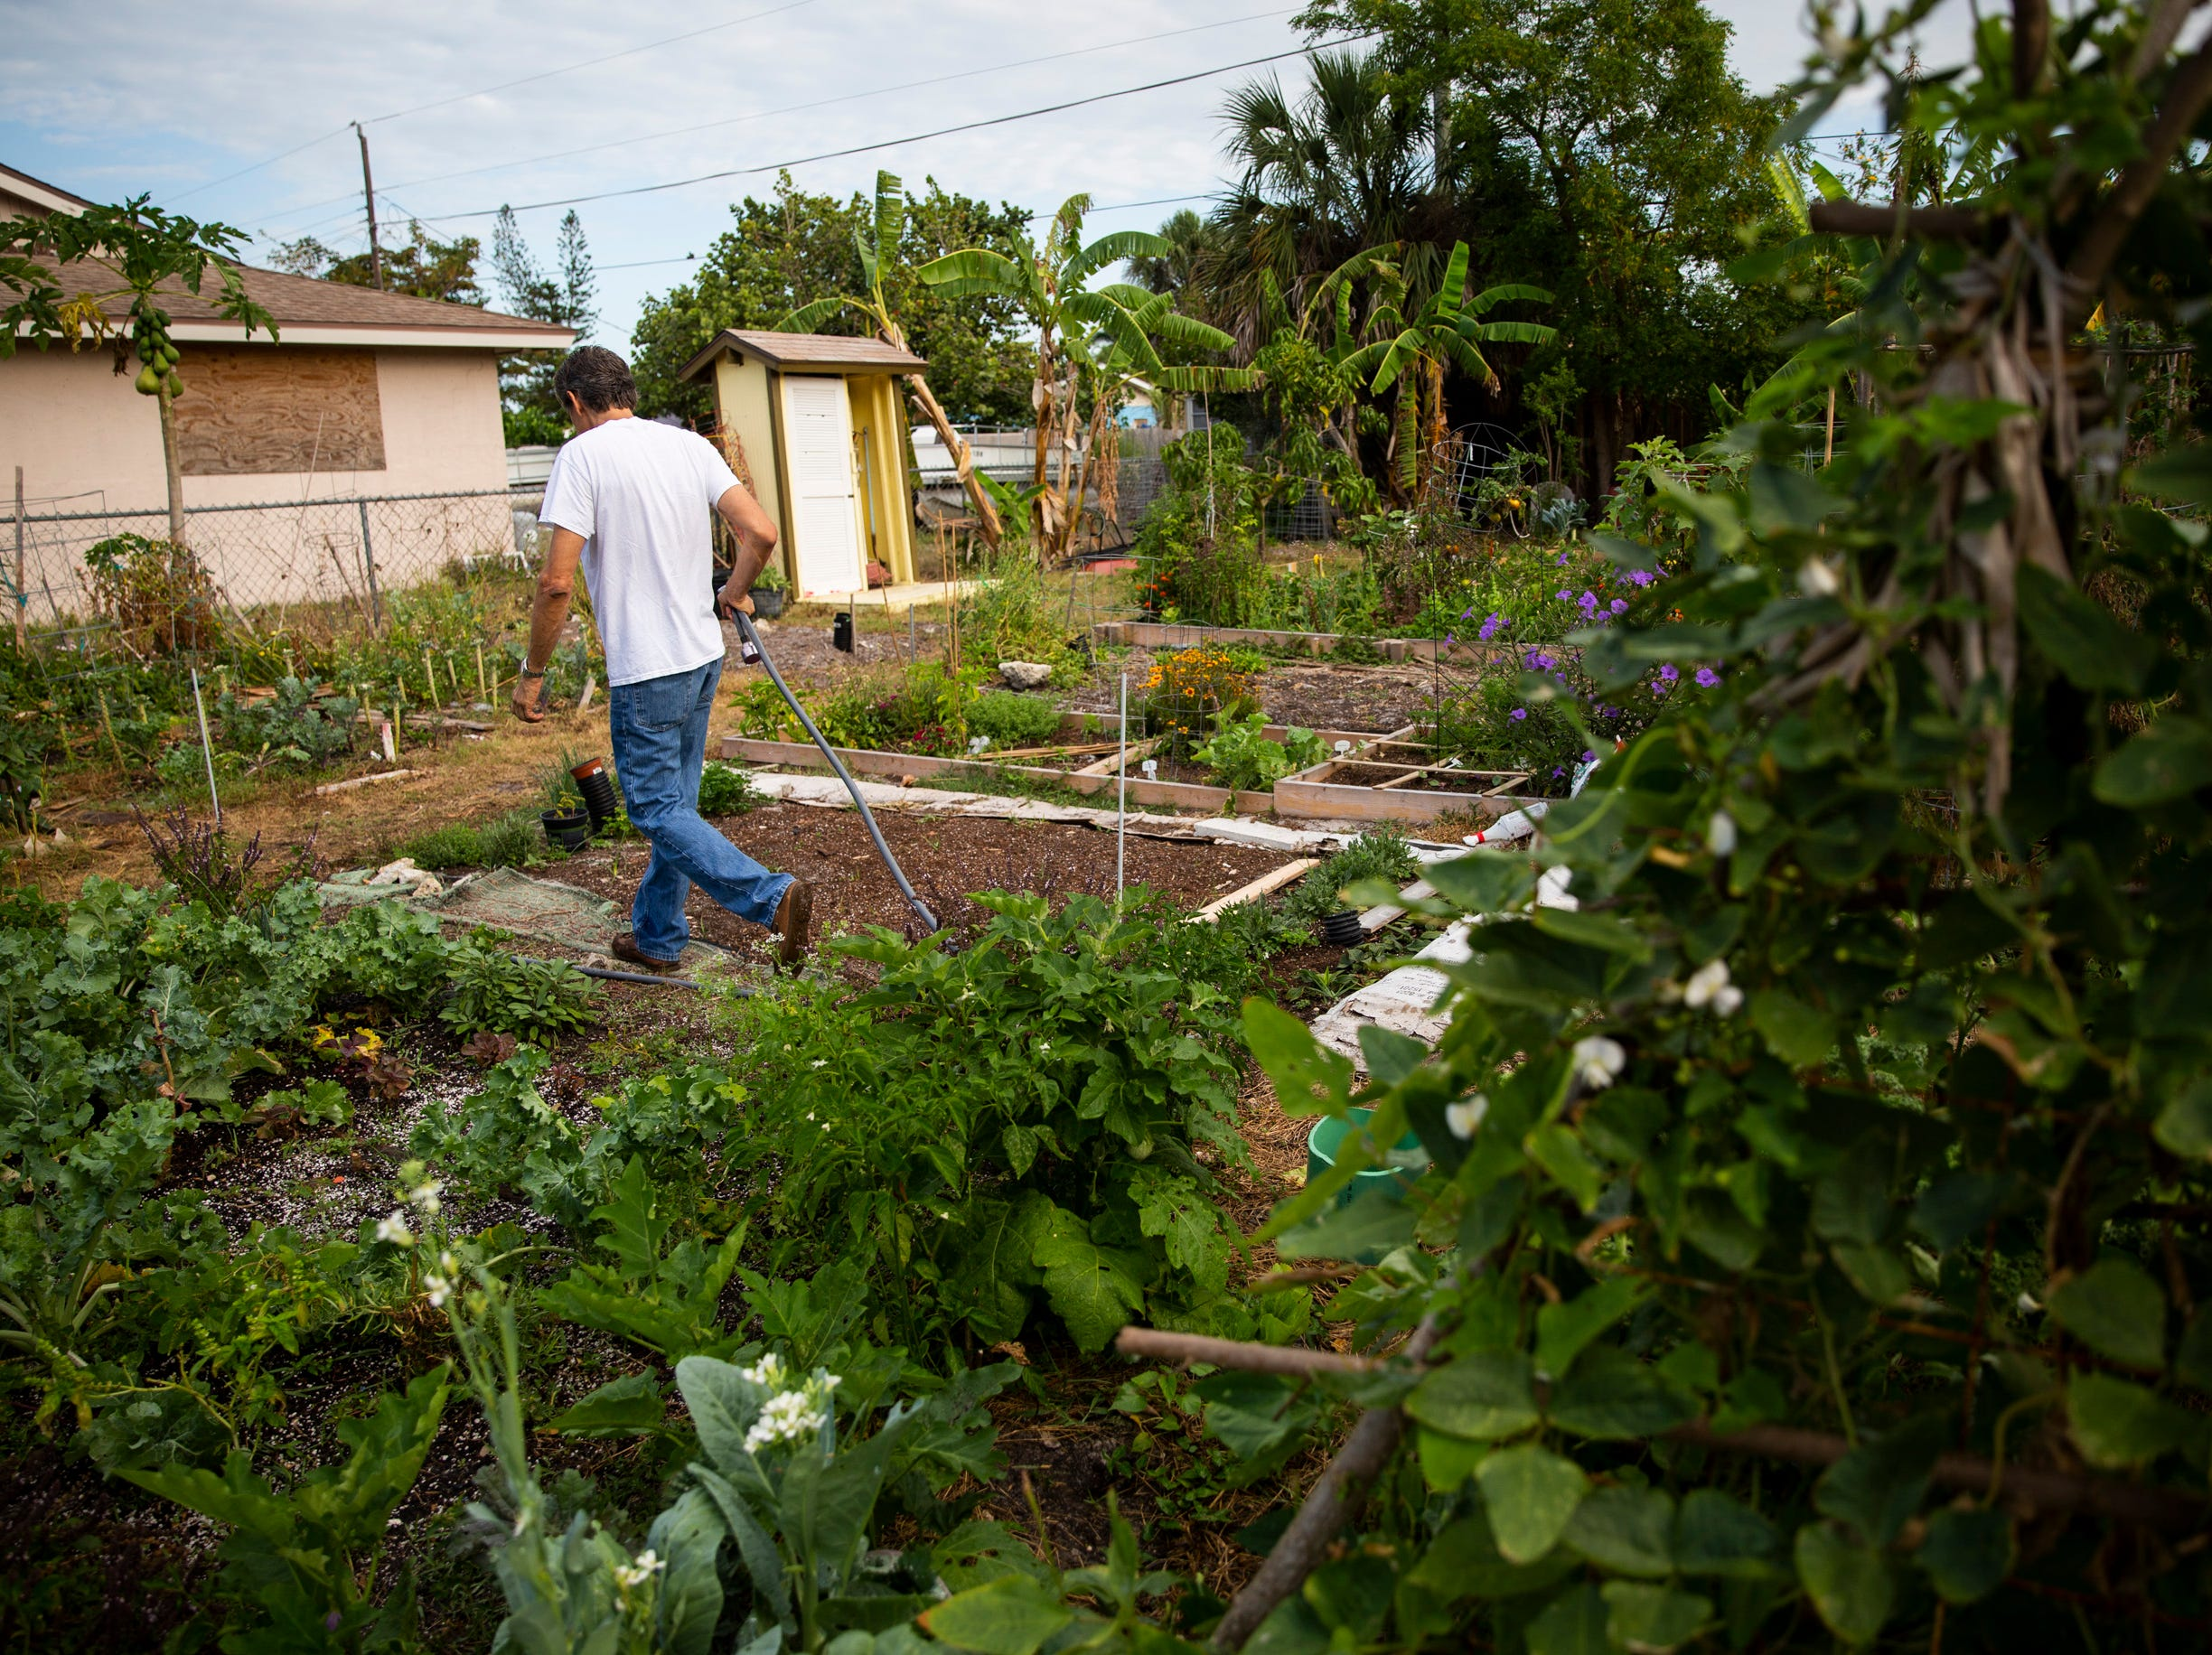 Sean McCabe walks through a community garden on 98th Avenue North in Naples Park on Tuesday, May 7, 2019.